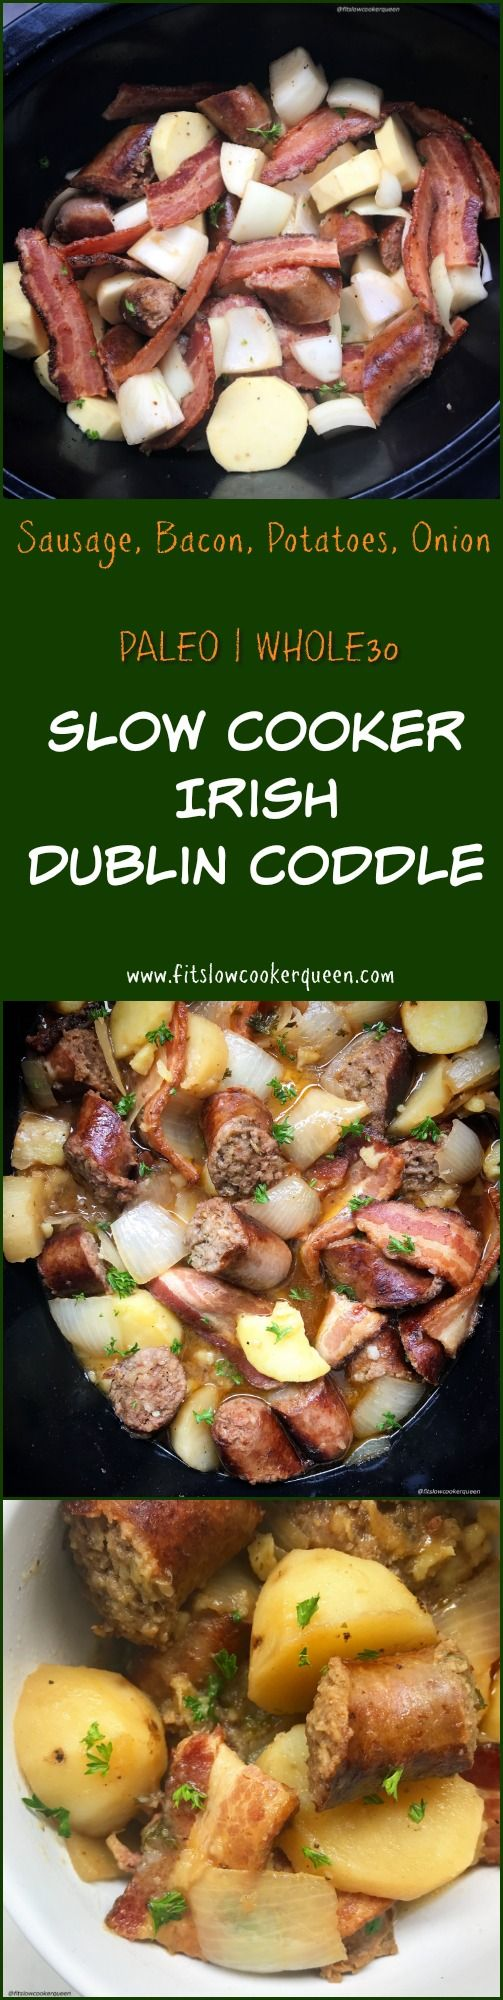 slow cooker crockpot whole30 paleo - Sausage, bacon, potatoes, and onion. This slow cooker spin on Irish Dublin coddle is definitely hearty yet also whole30 and paleo compliant. You can serve this St. Patrick's Day recipe for breakfast, lunch or dinner.